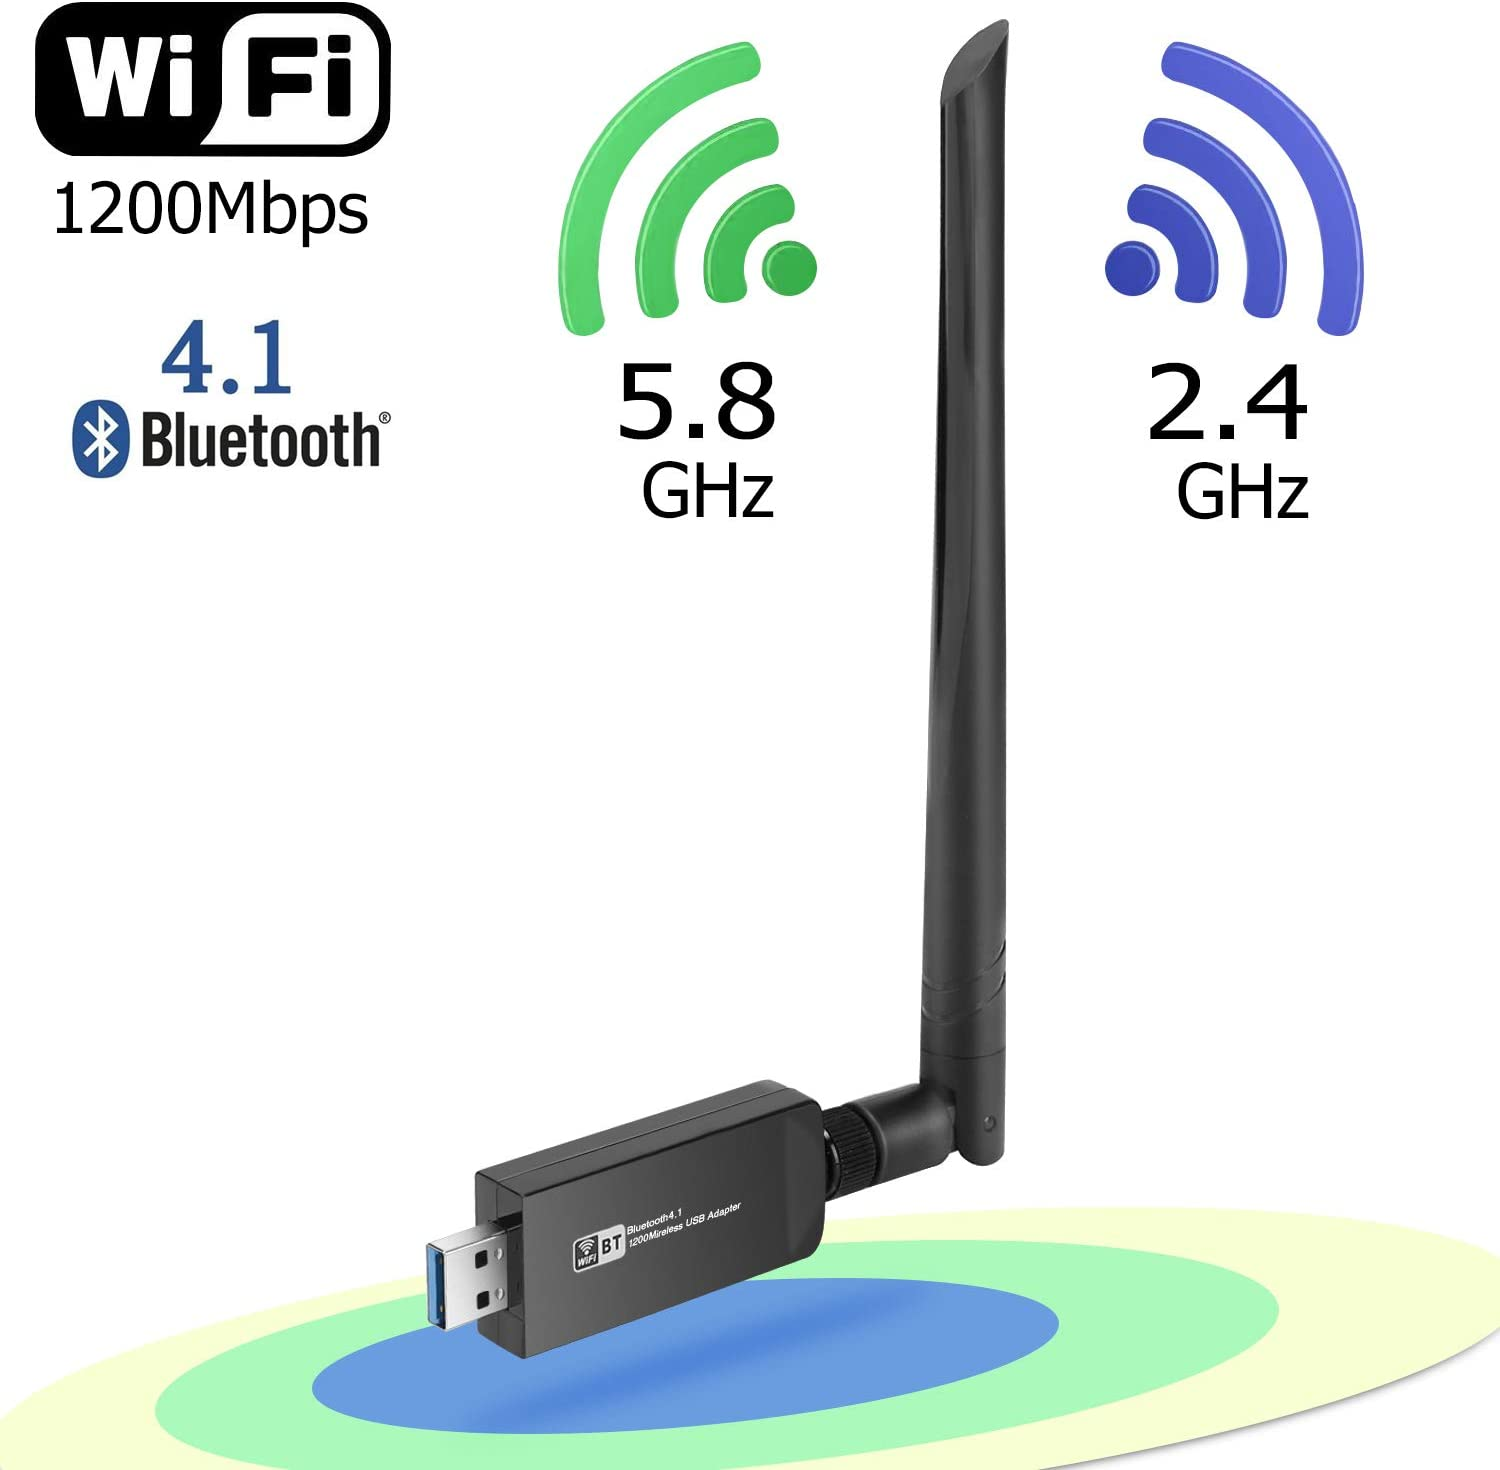 Wireless WiFi Bluetooth Adapter, USB 3.0 WiFi Dongle Network Adapter & Bluetooth 4.1 Transmitter LAN Card AC1200 Dual Band 2.4G/5.8G with Dual Antenna for Desktop/Laptop/PC